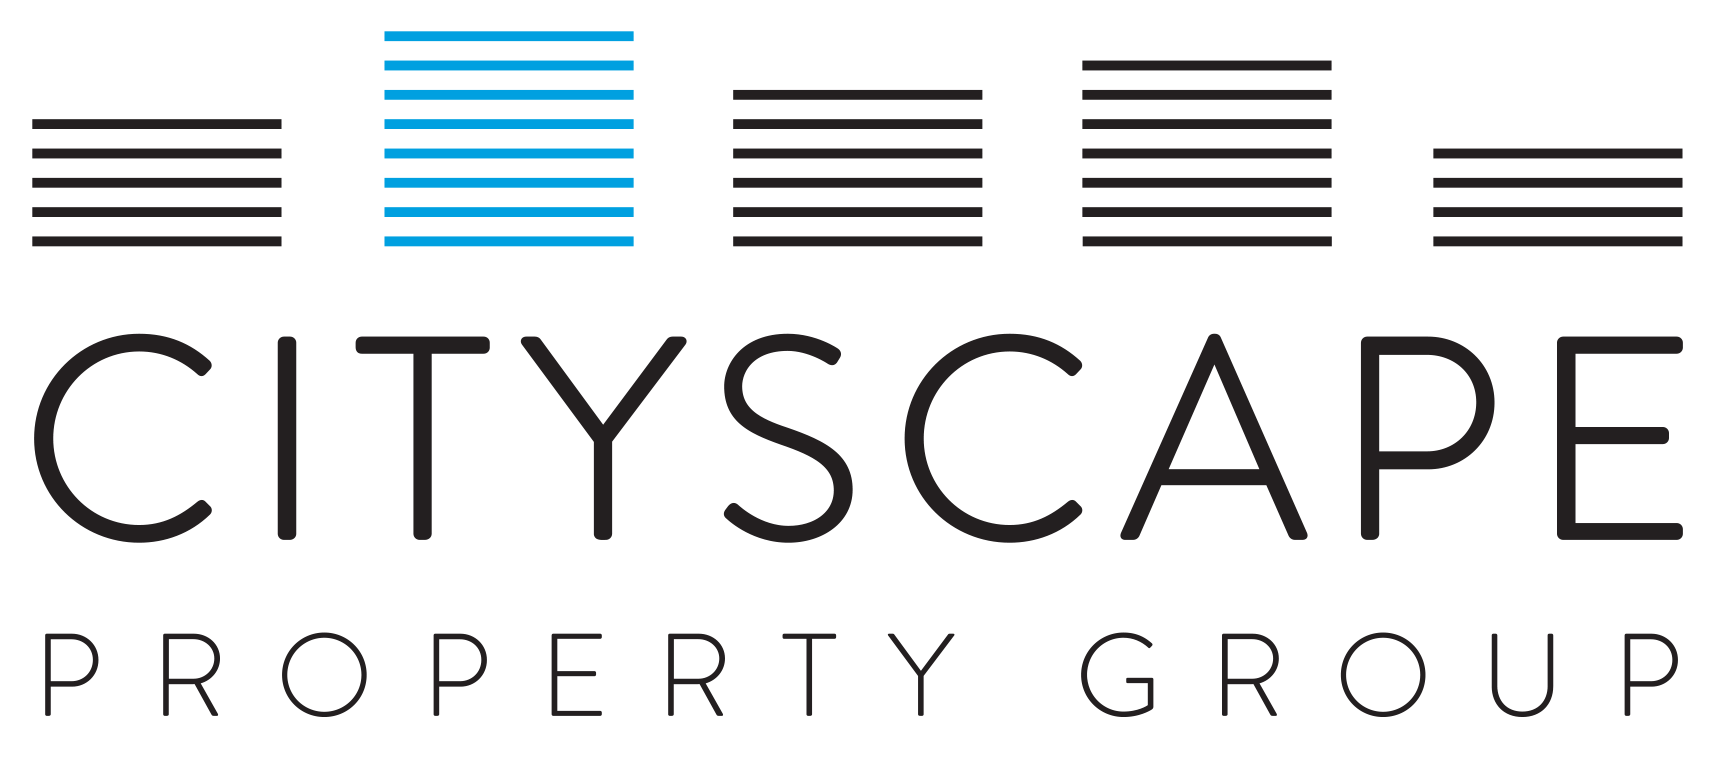 Cityscape Property Group